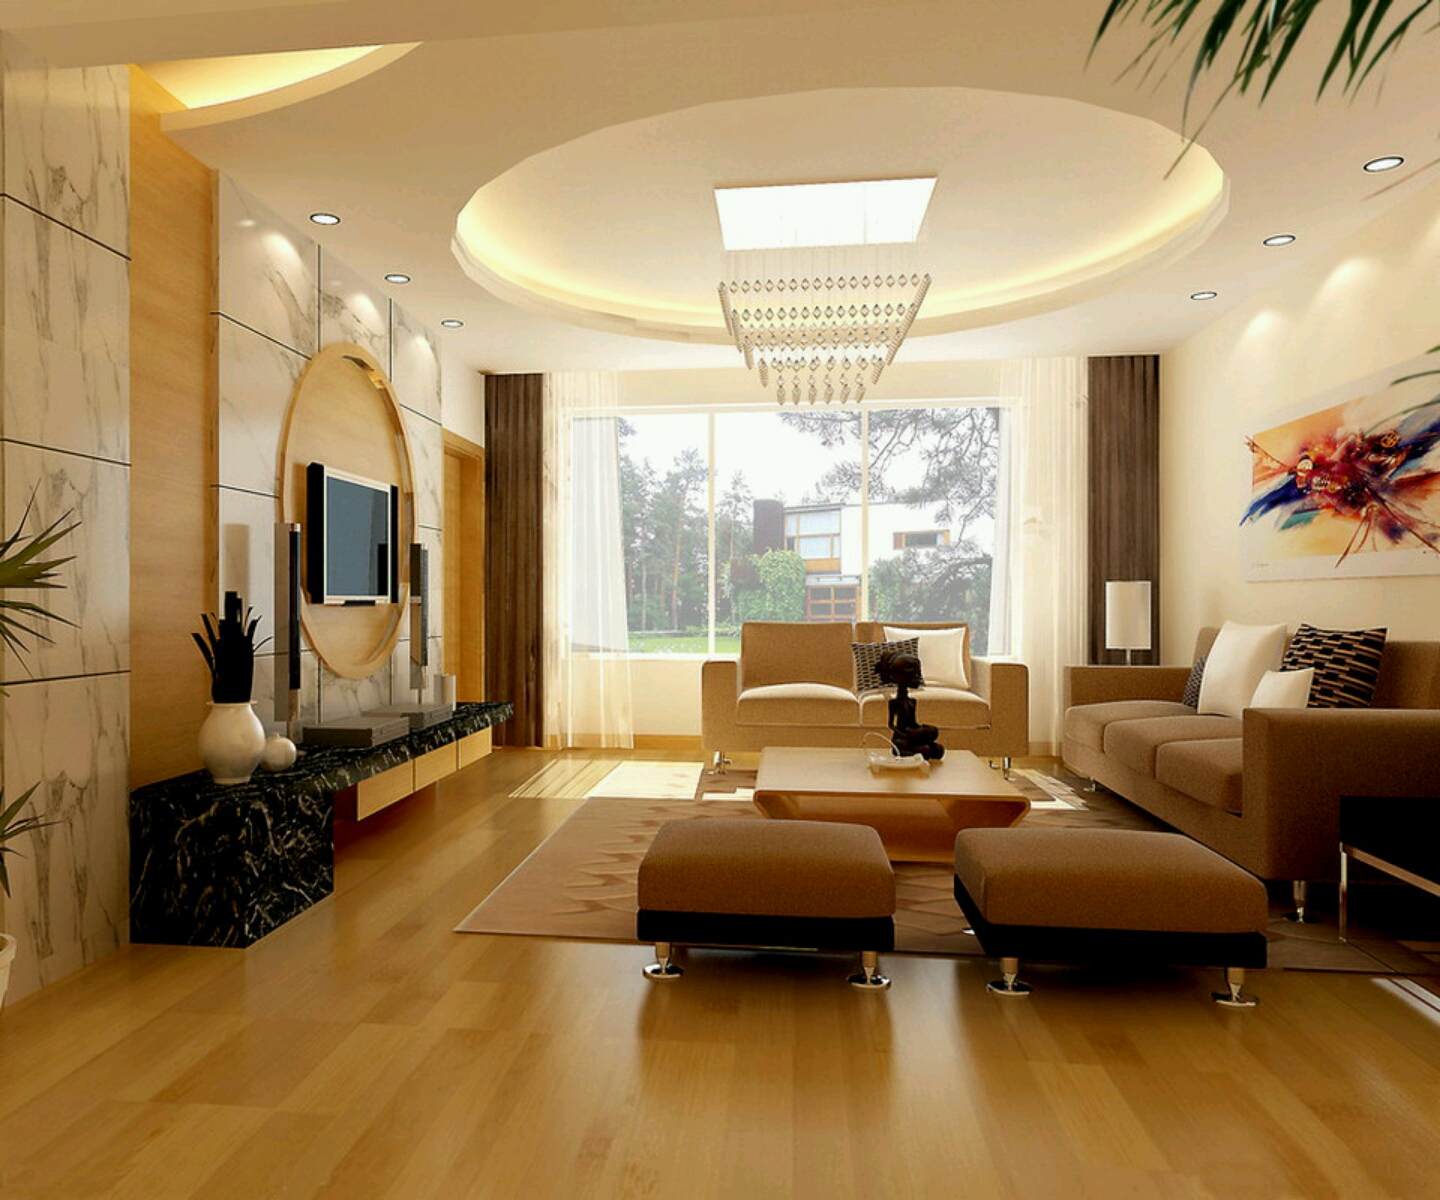 Modern interior decoration living rooms ceiling designs for Home sitting room design